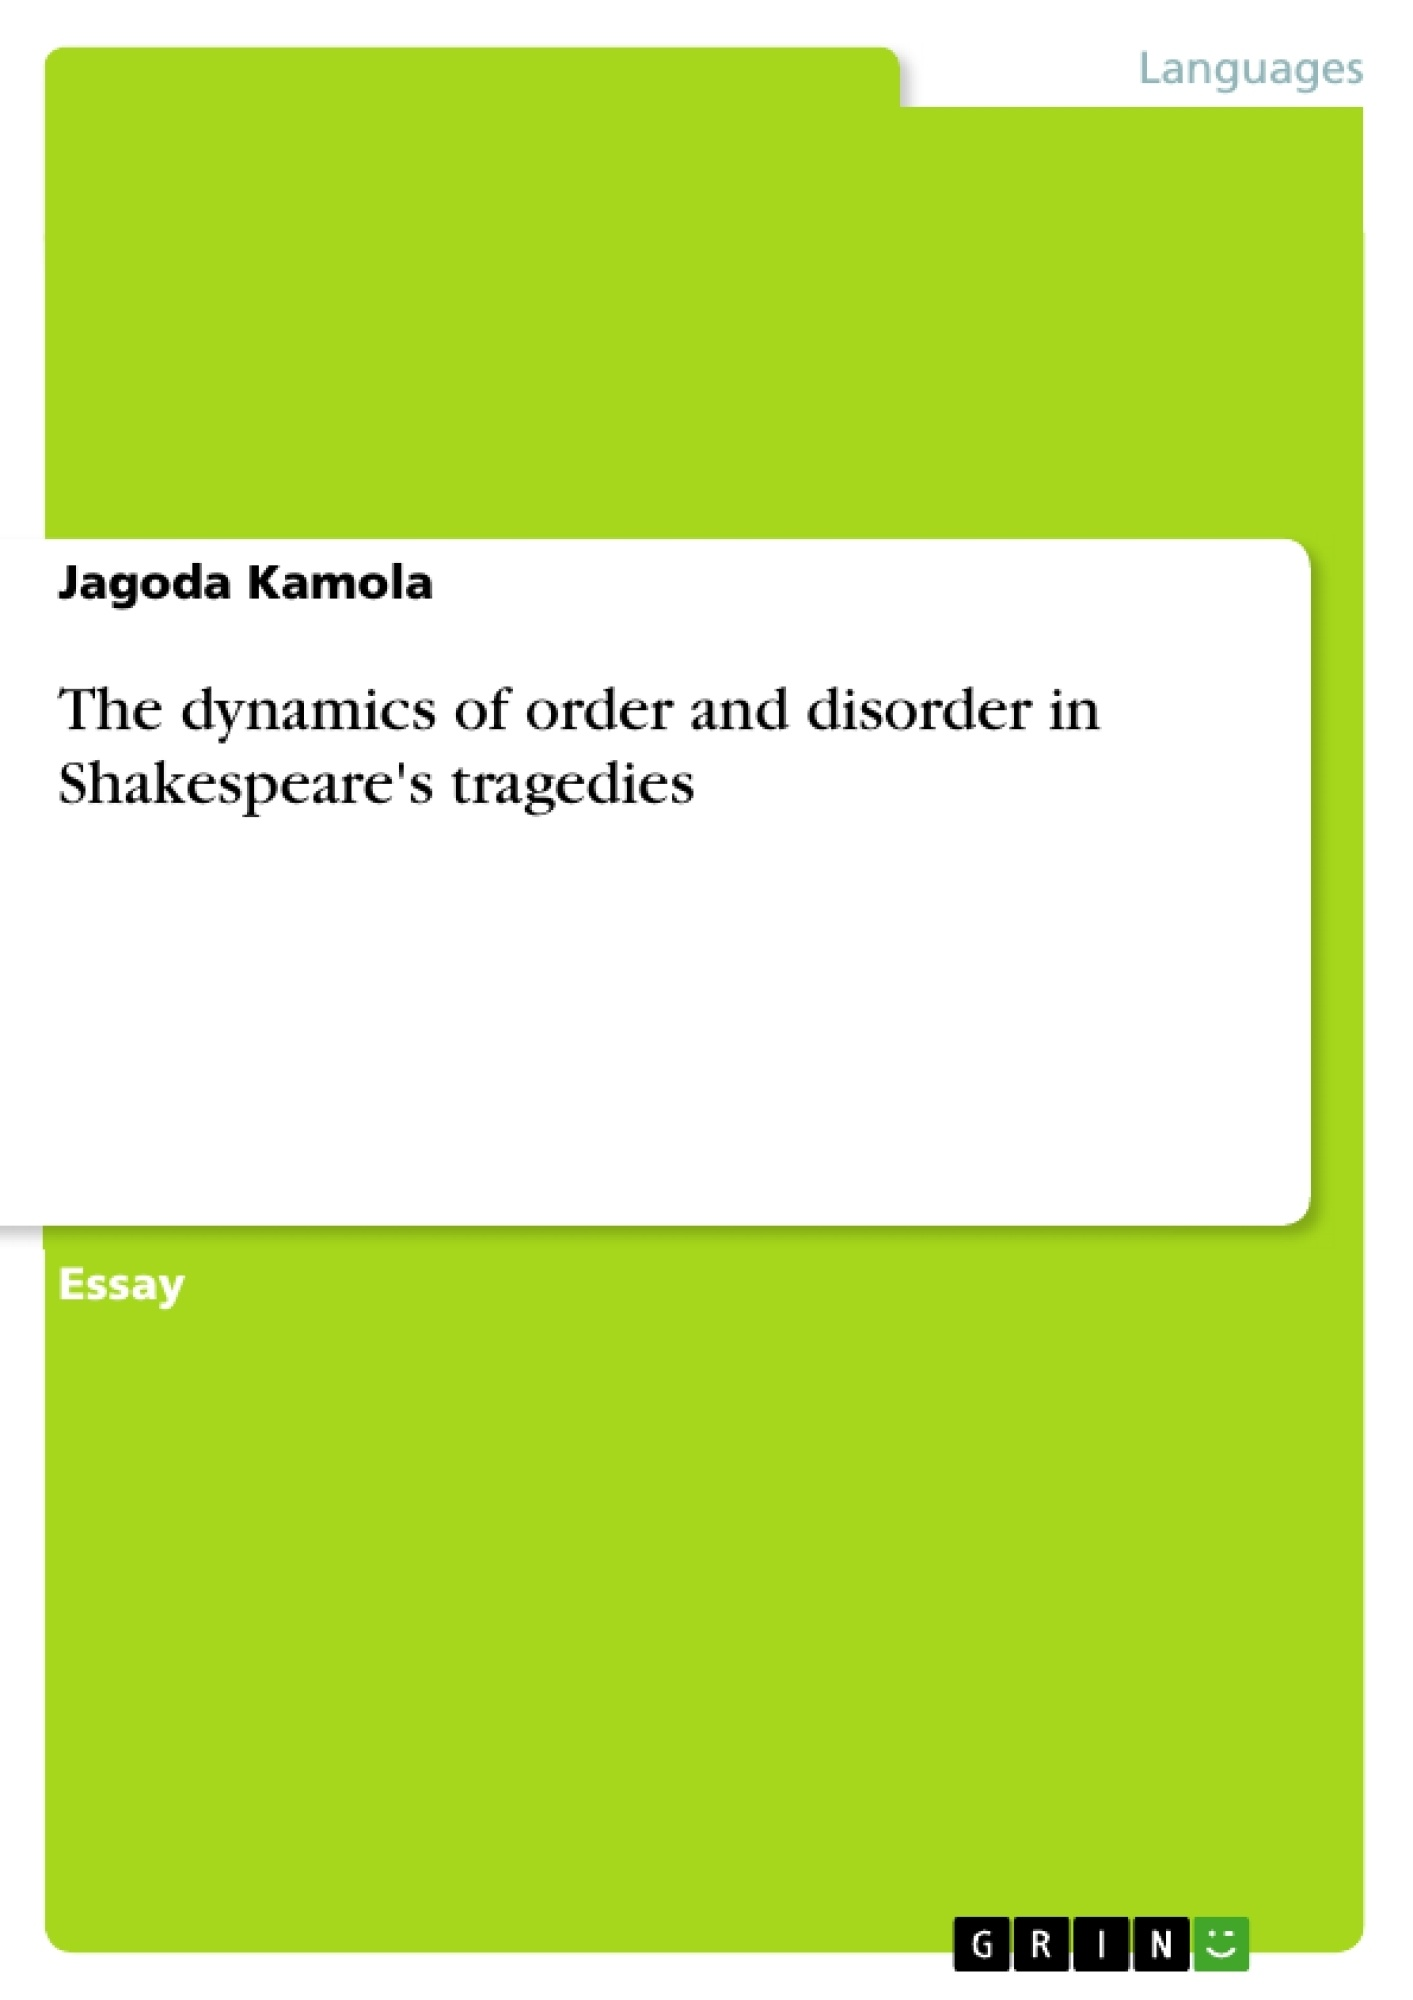 Title: The dynamics of order and disorder in Shakespeare's tragedies